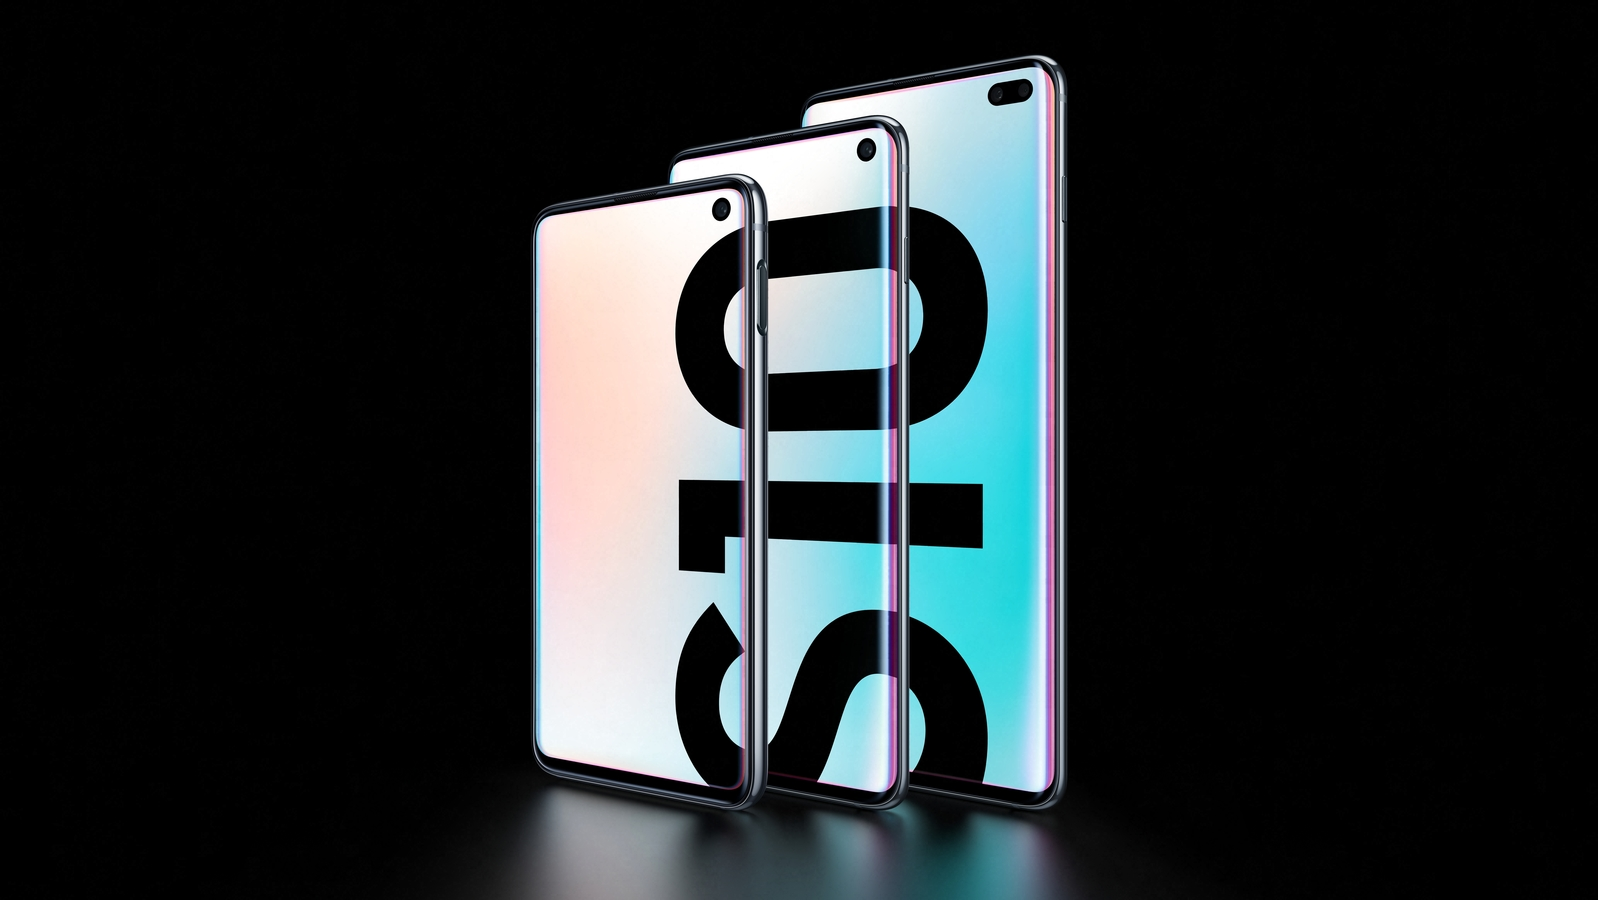 Samsung Galaxy S10 is out but its cryptocurrency wallet is AWOL